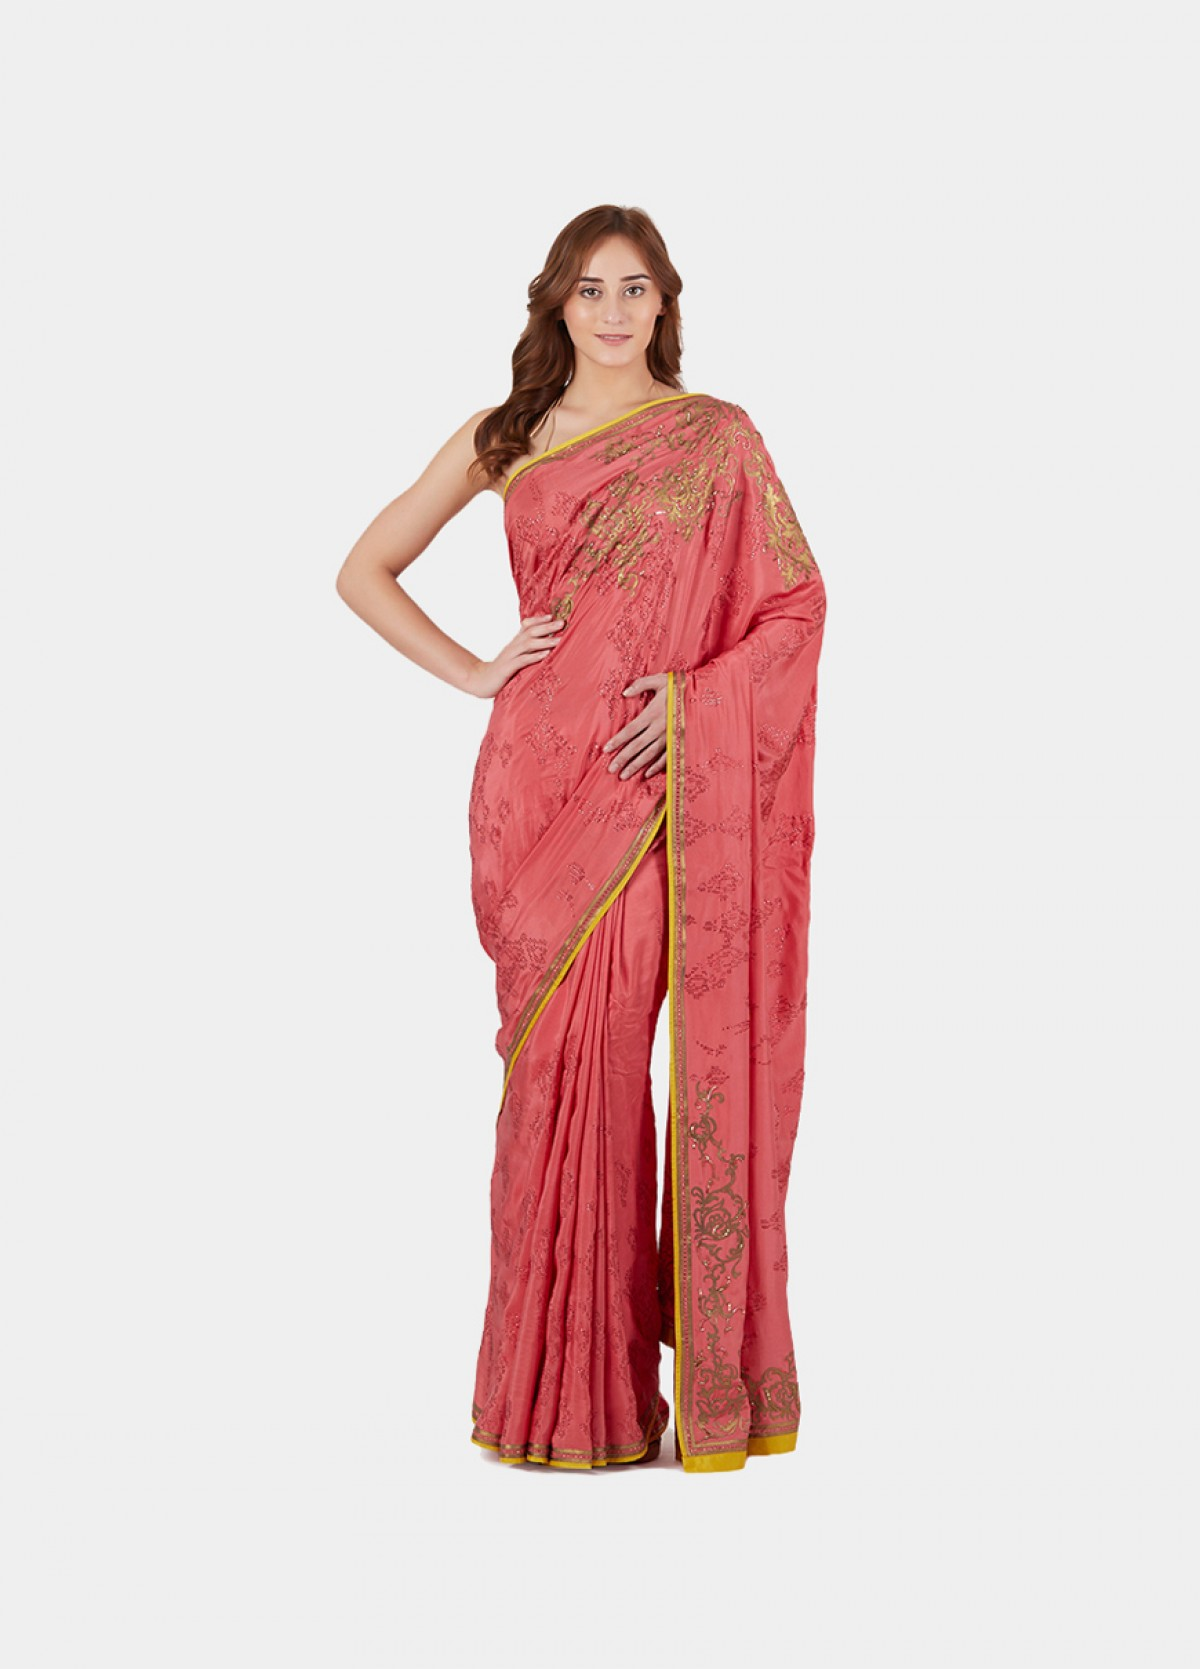 The Coral Embroidered Sari